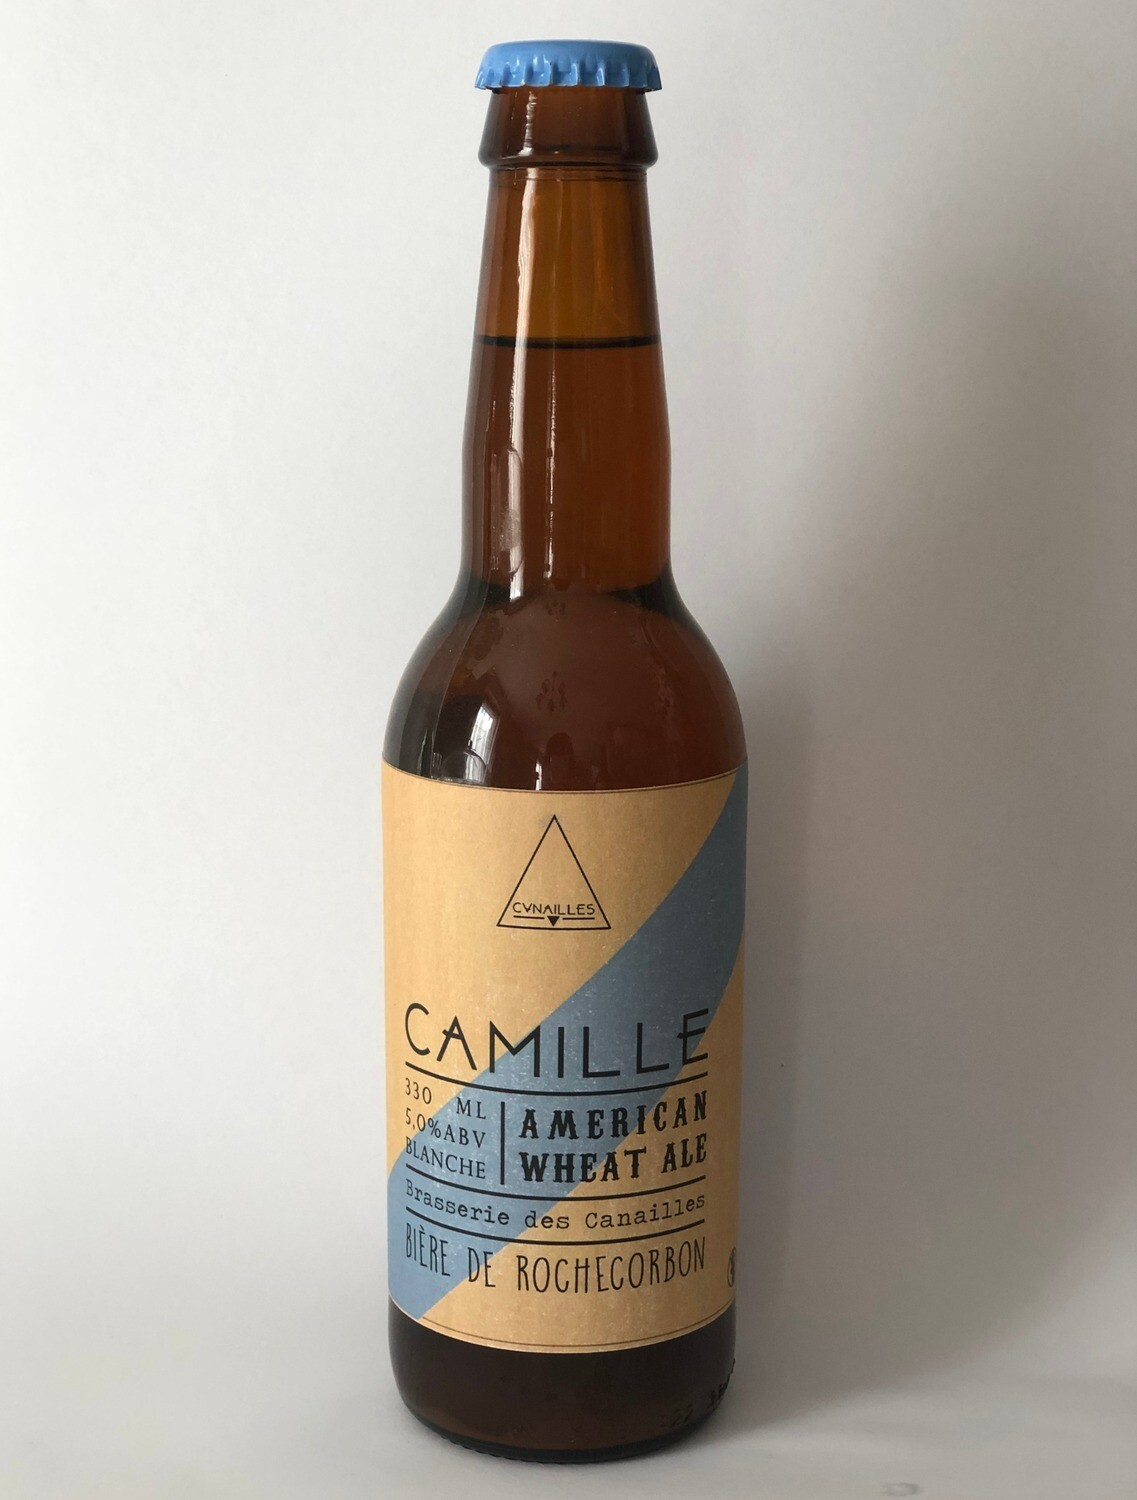 CAMILLE (Blanche) - 33cl / 5°